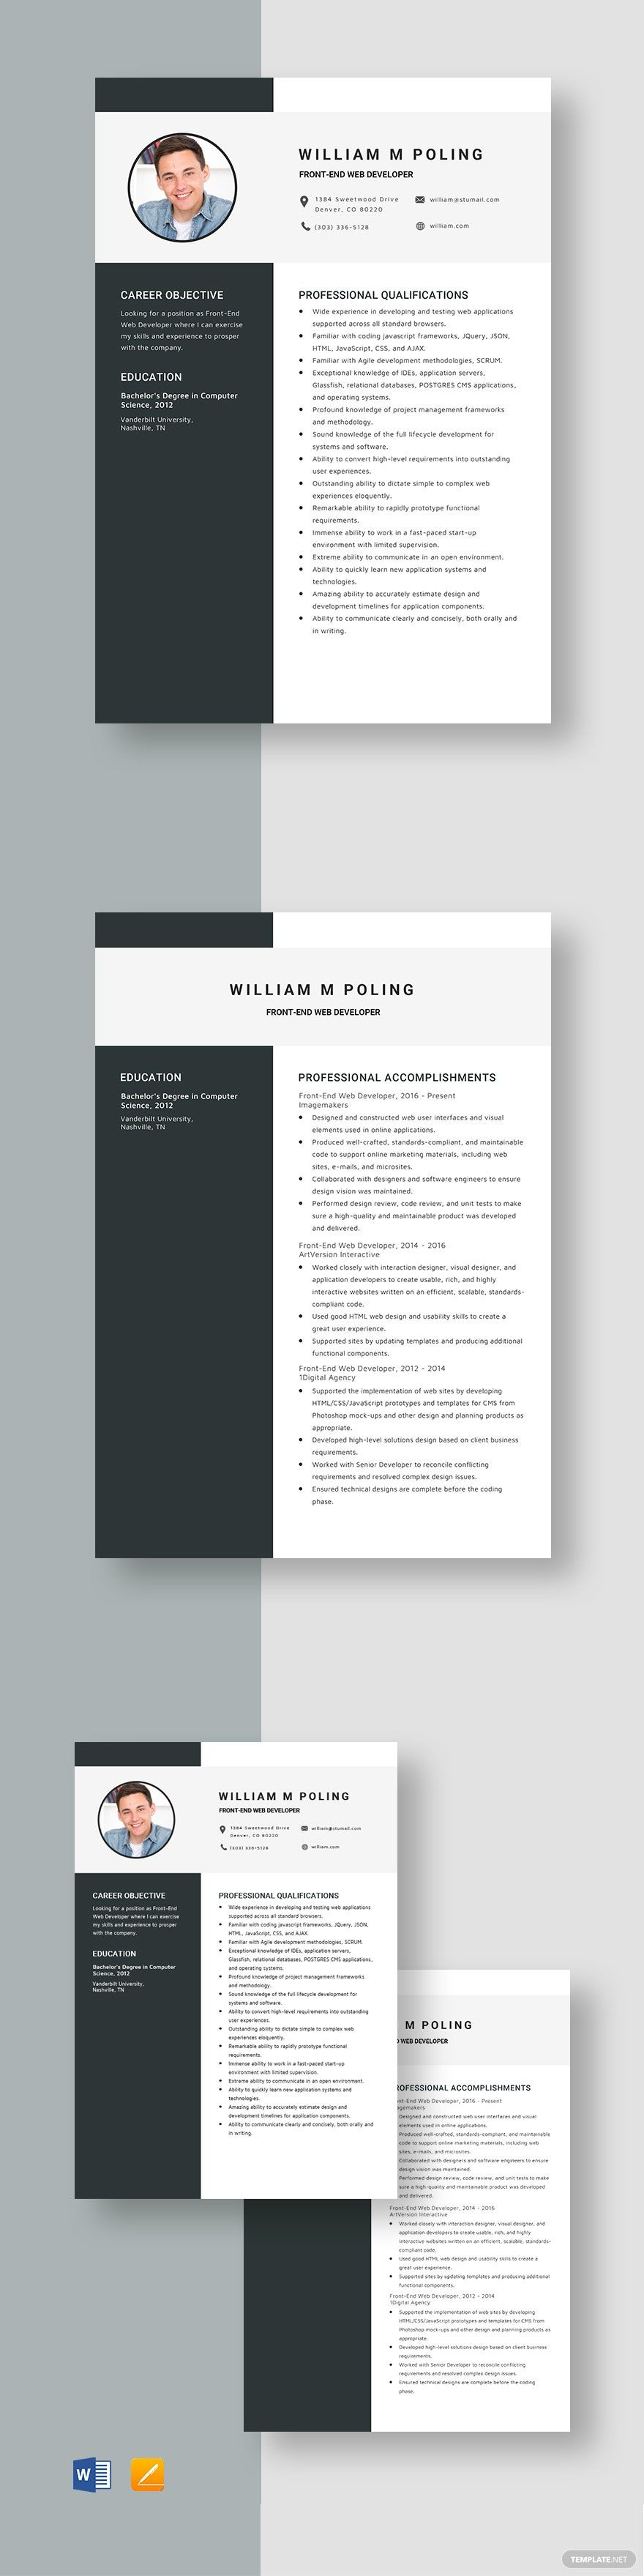 FrontEnd Web Developer Resume Template in 2020 Web